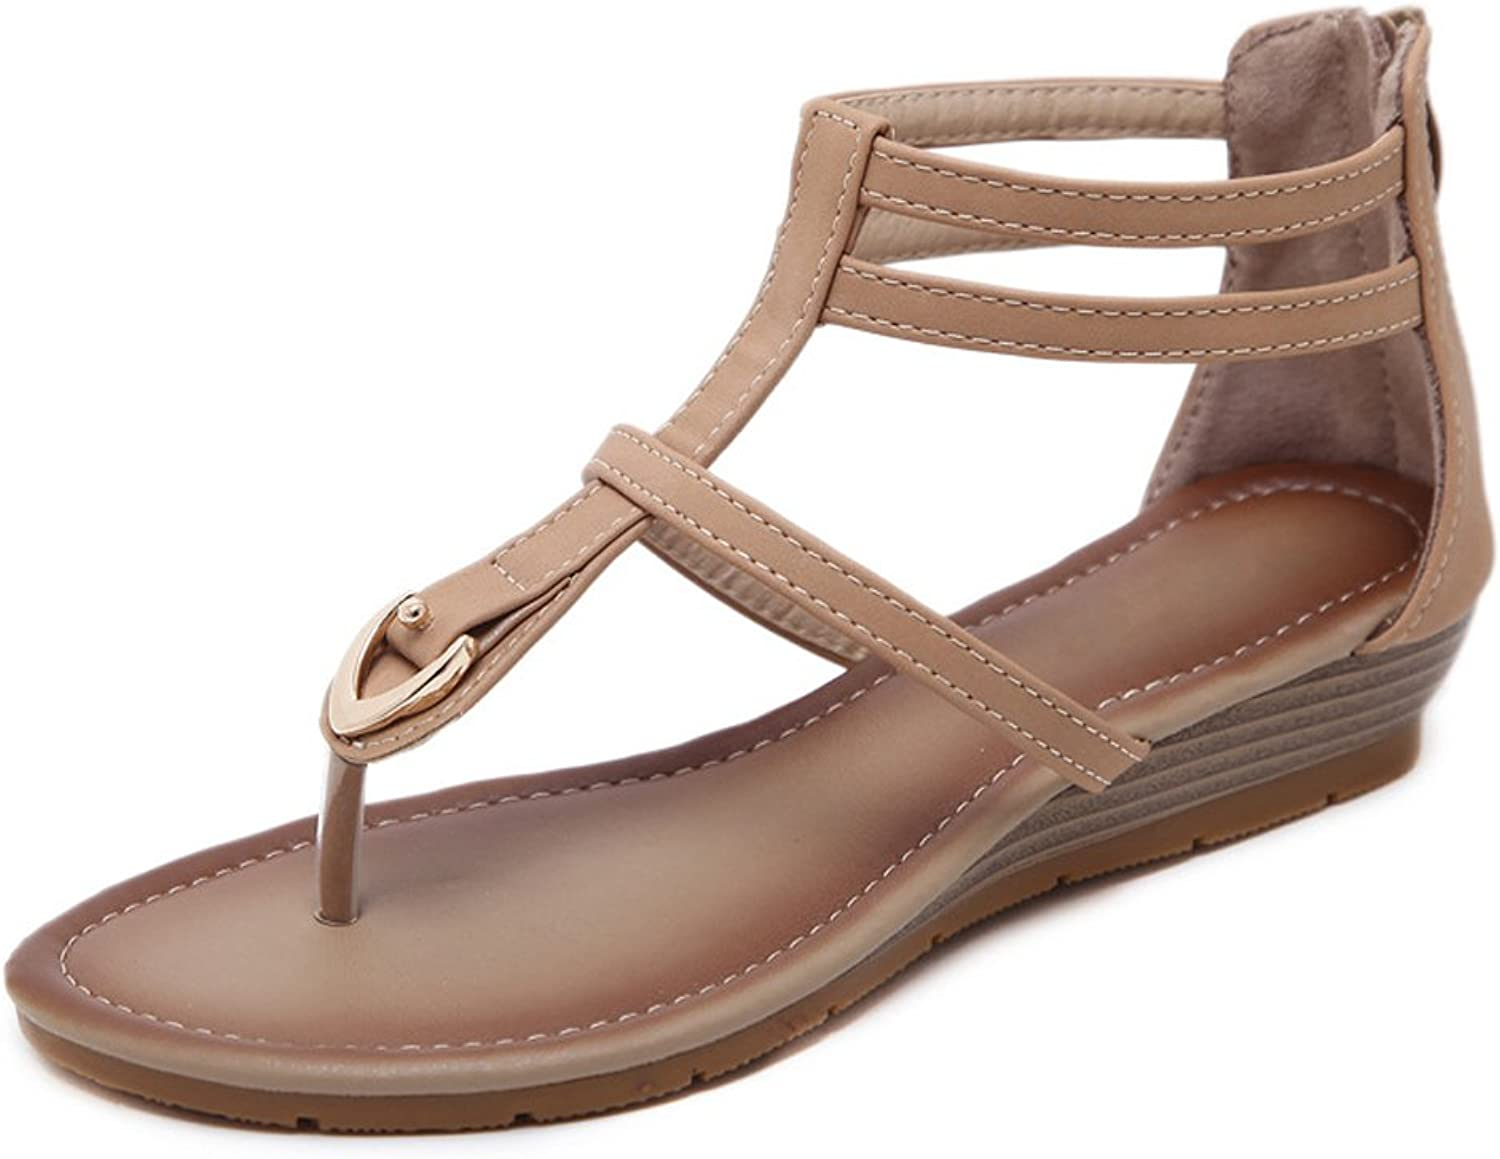 Women's Flat Sandals Summer Clip Toe Ankle T-Strap Wedge shoes